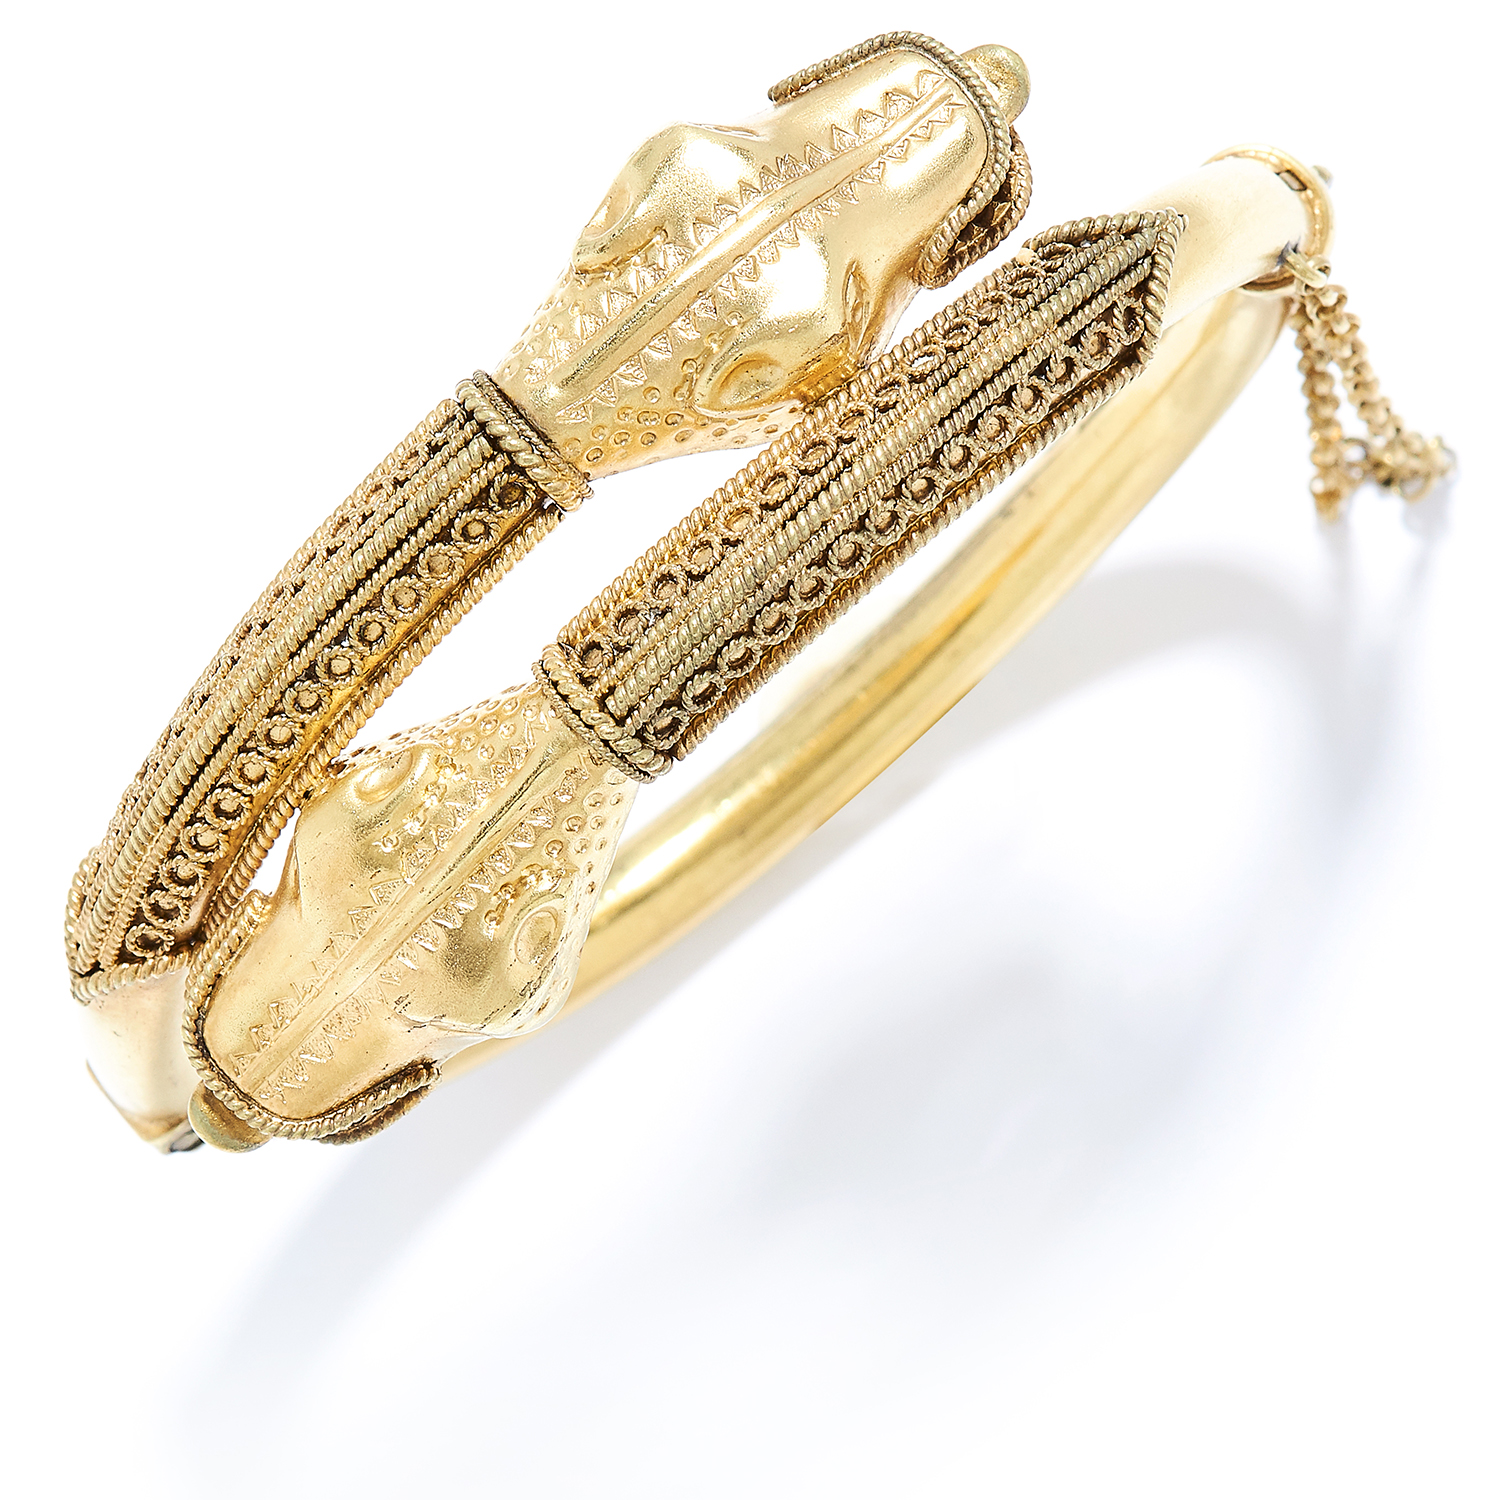 ANTIQUE GOLD SNAKE / DRAGON BANGLE in high carat yellow gold, depicting two dragon heads coiling